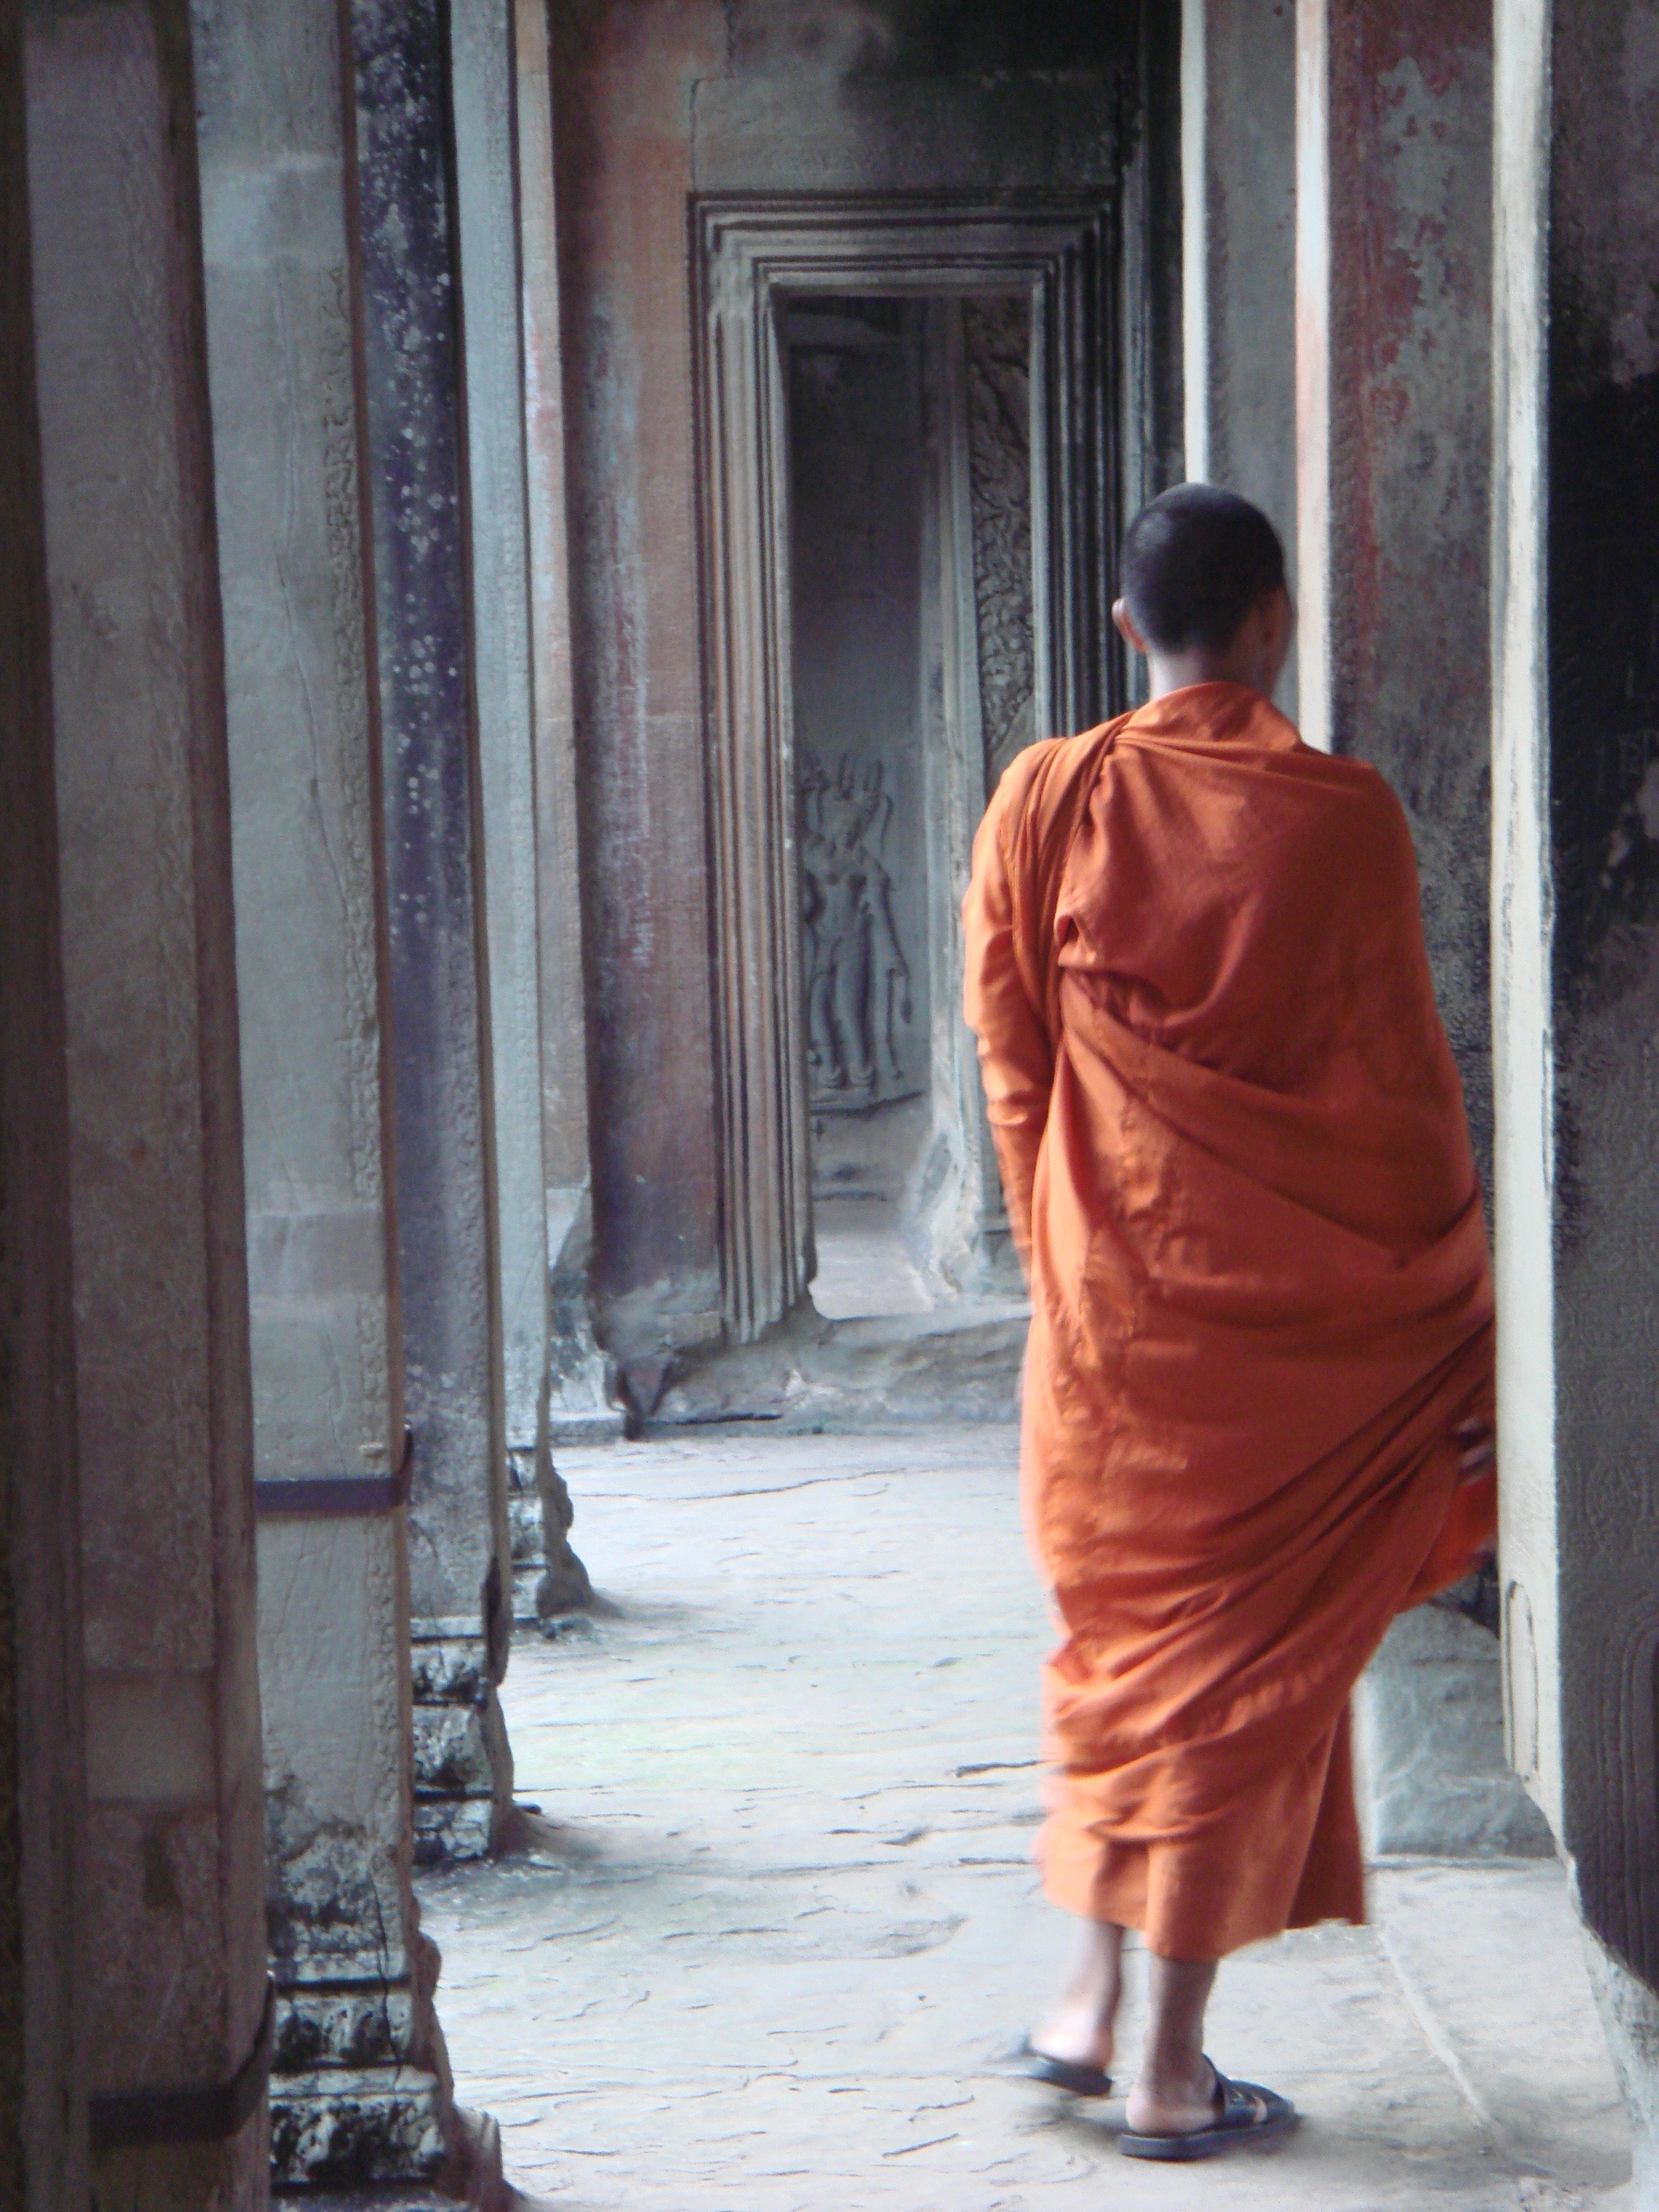 Don't touch the monks in Southeast Asia